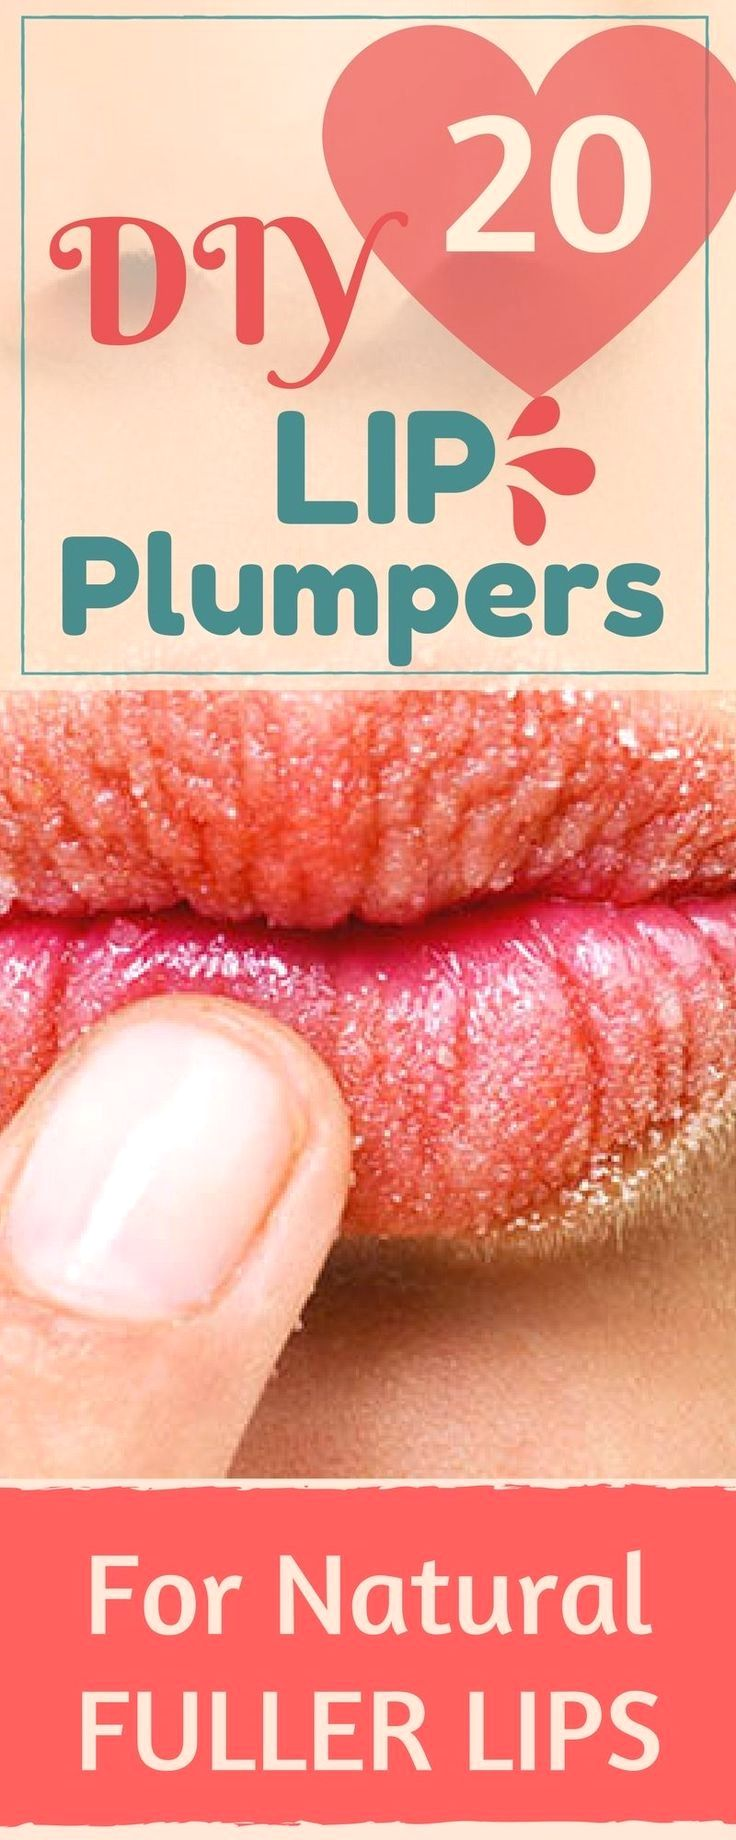 Looking for great DIY lip plumpers that are potent enough